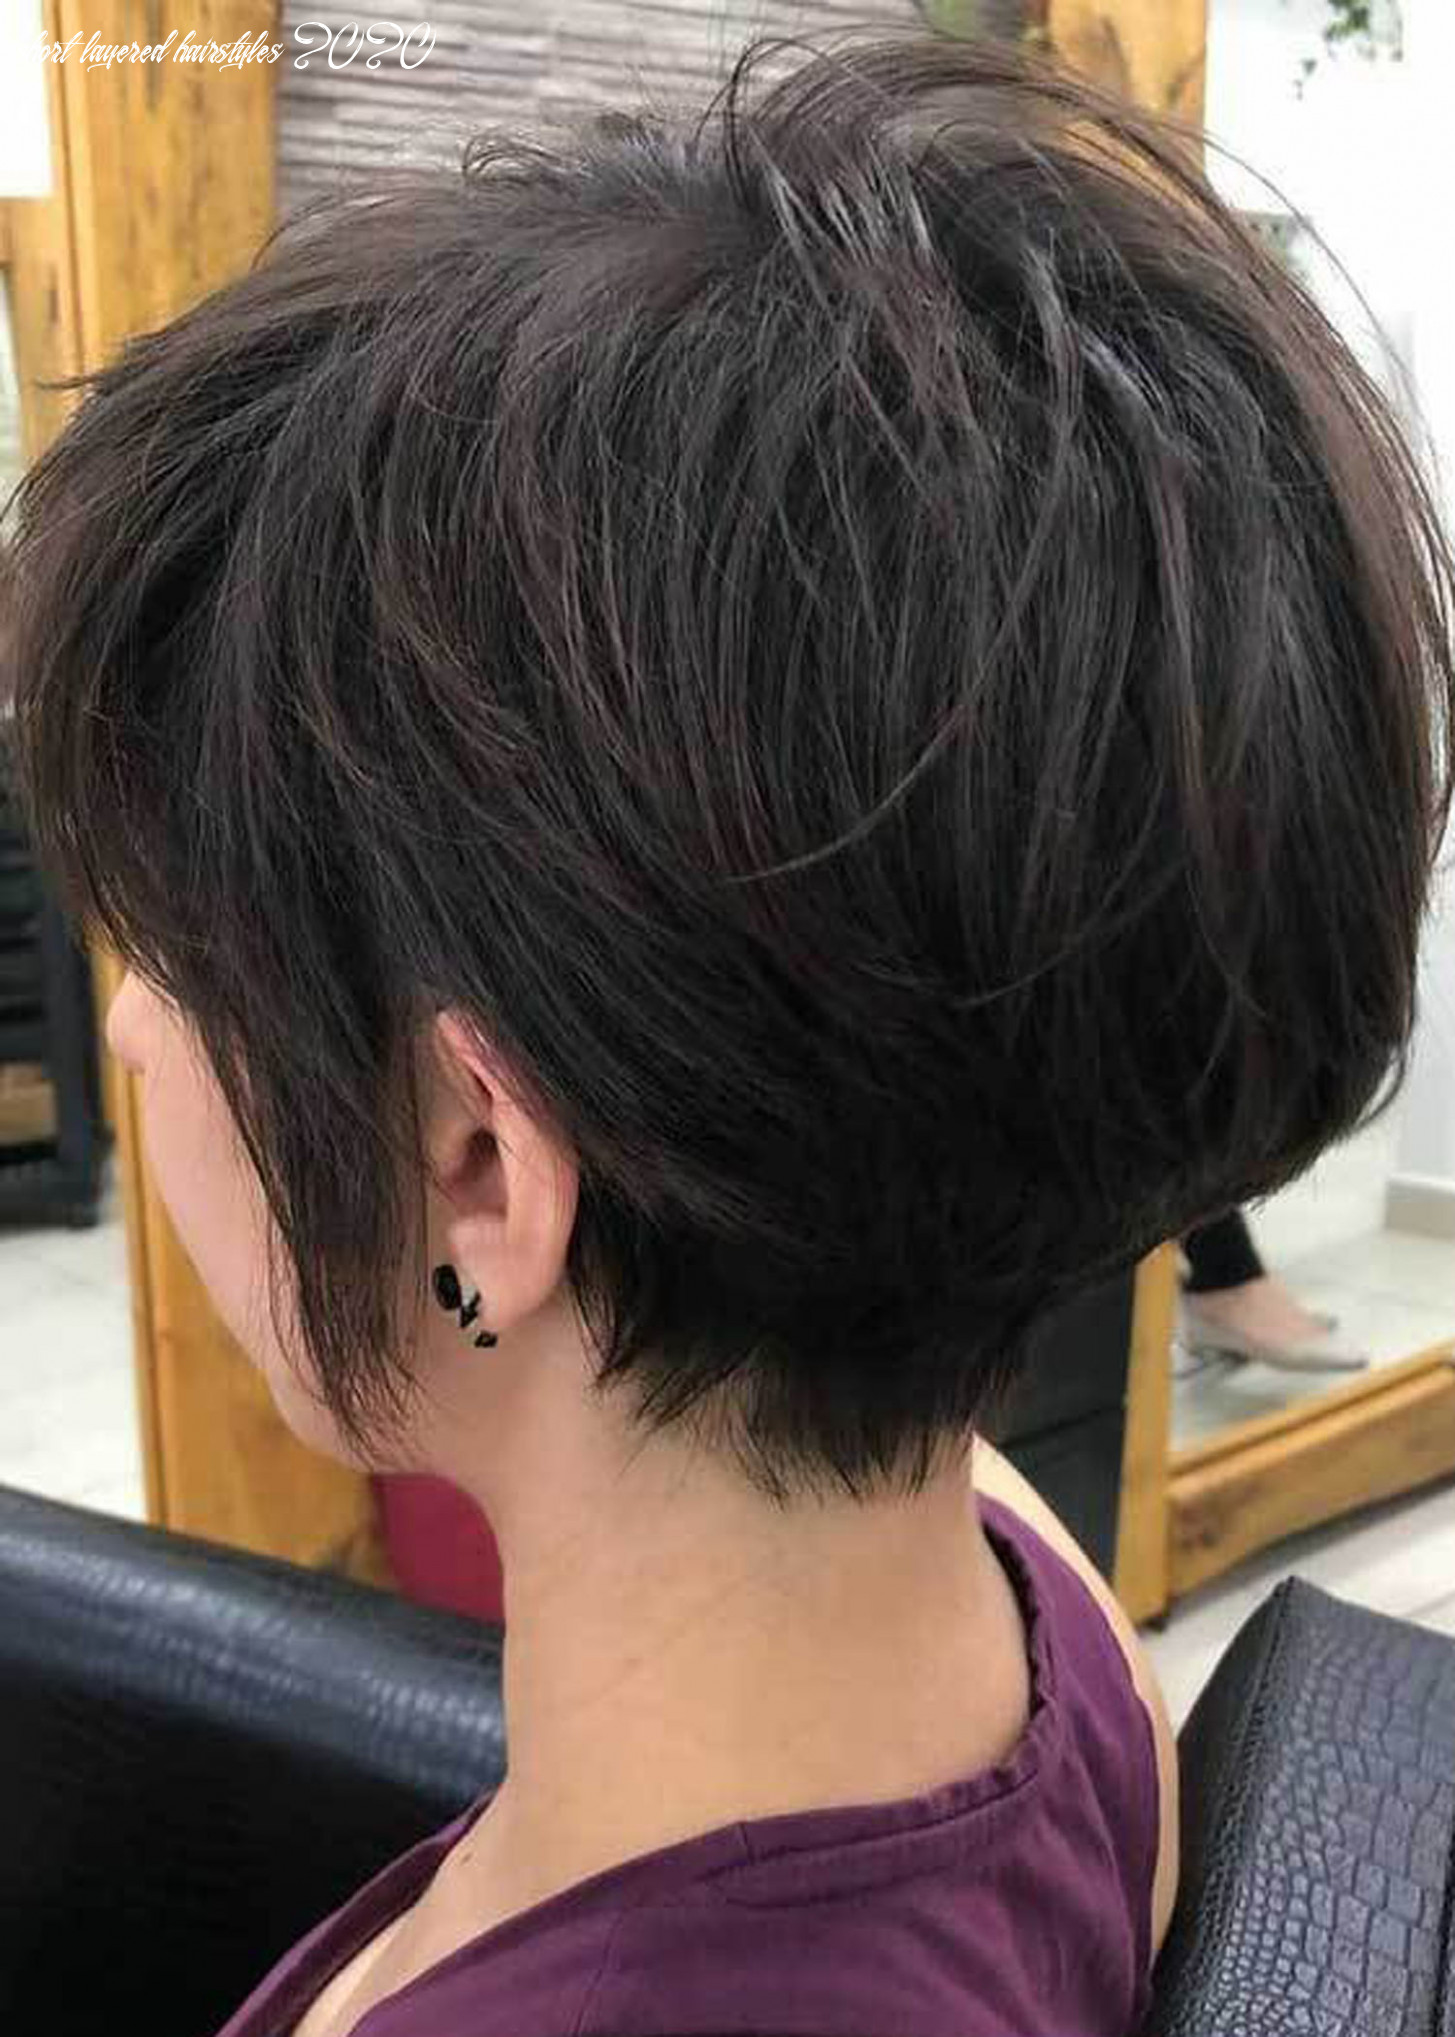 11 short layered haircuts fashion in 11 | magazinepk short layered hairstyles 2020